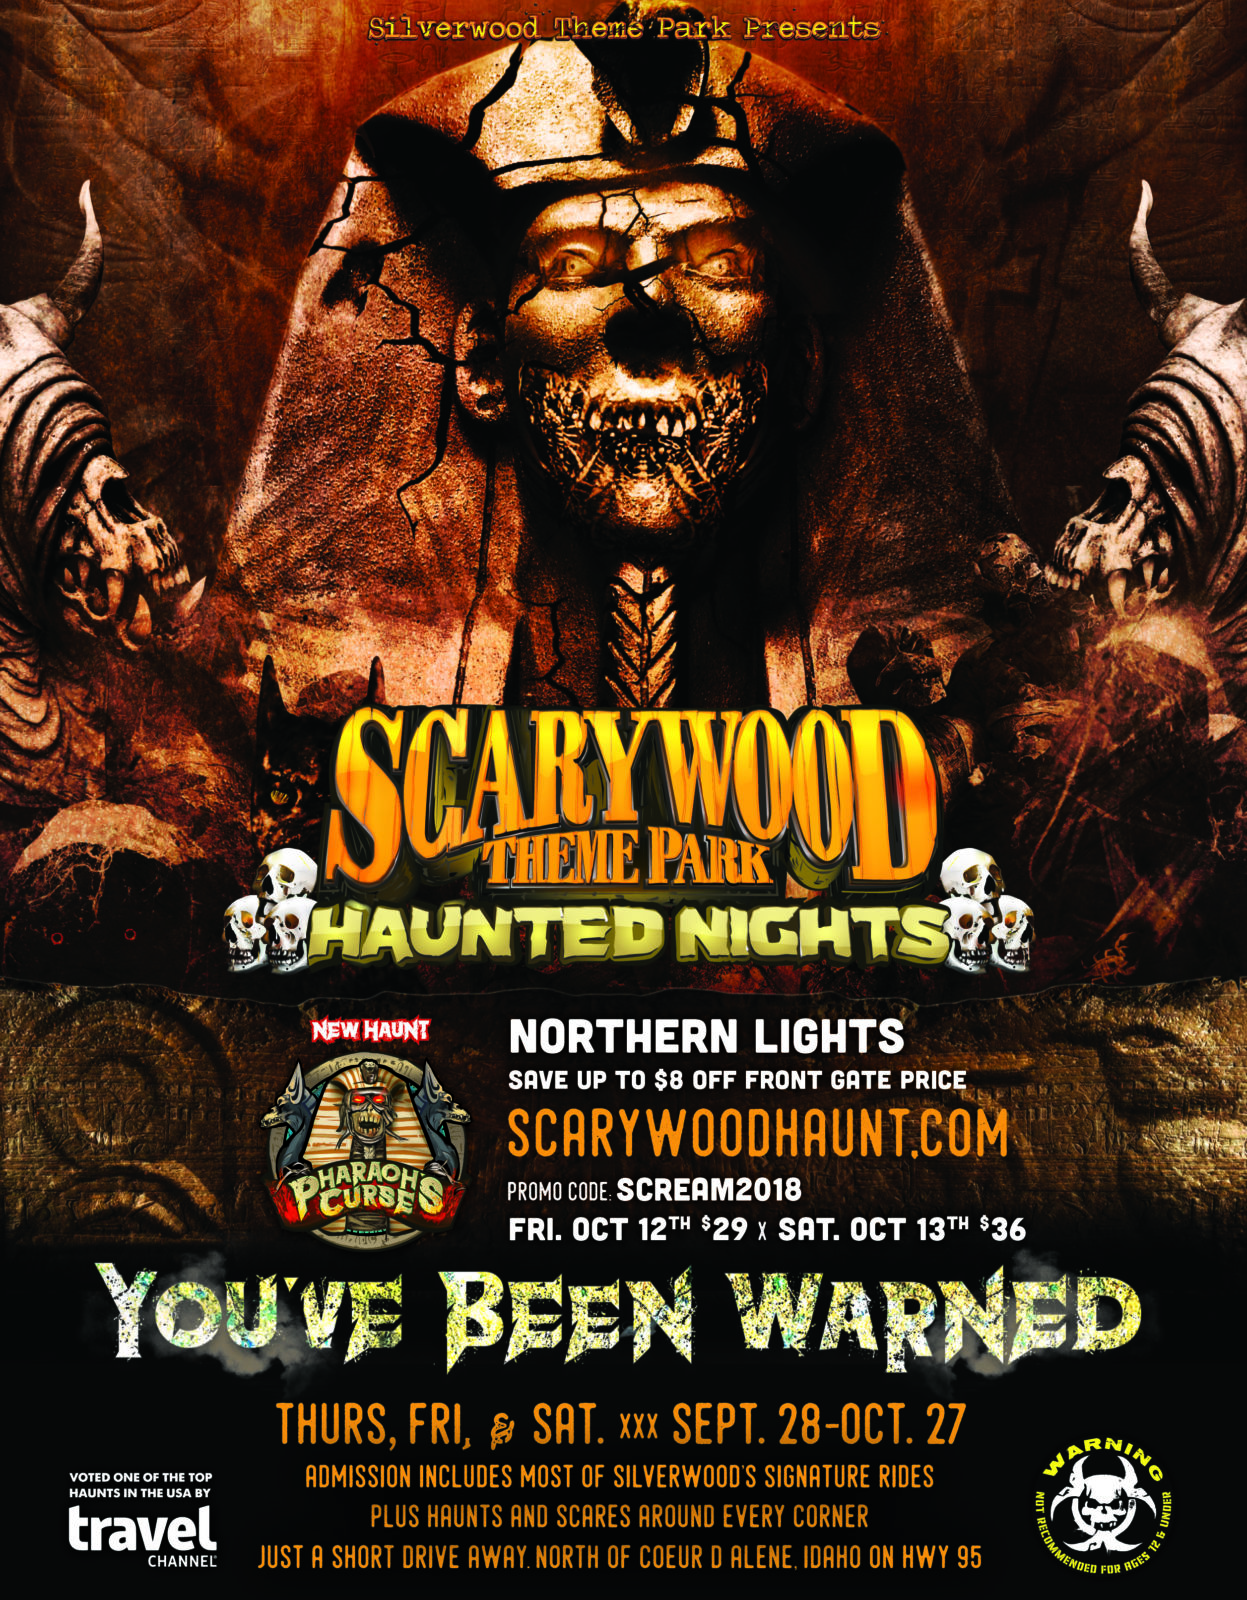 Silverwood Theme Park Presents: Scarywood Theme Park Haunted Nights. New Haunt: Pharaoh's Curse. Northern Lights: Save up to $8 off front gate price. Scarywoodhaunt.com. Promo code: SCREAM2018. Friday, October 12th $29 x Saturday, October 13th $36. You've been warned. Thursday, Friday, and Saturday September 28th to October 27th. Admission includes most of Silverwood's signature rides plus haunts and scares around every corner. Just a short drive away. North of Couer d'Alene, Idaho on Highway 95. Voted one of the top haunts in the USA by Travel Channel. Warning: Not recommended for ages 12 and under.